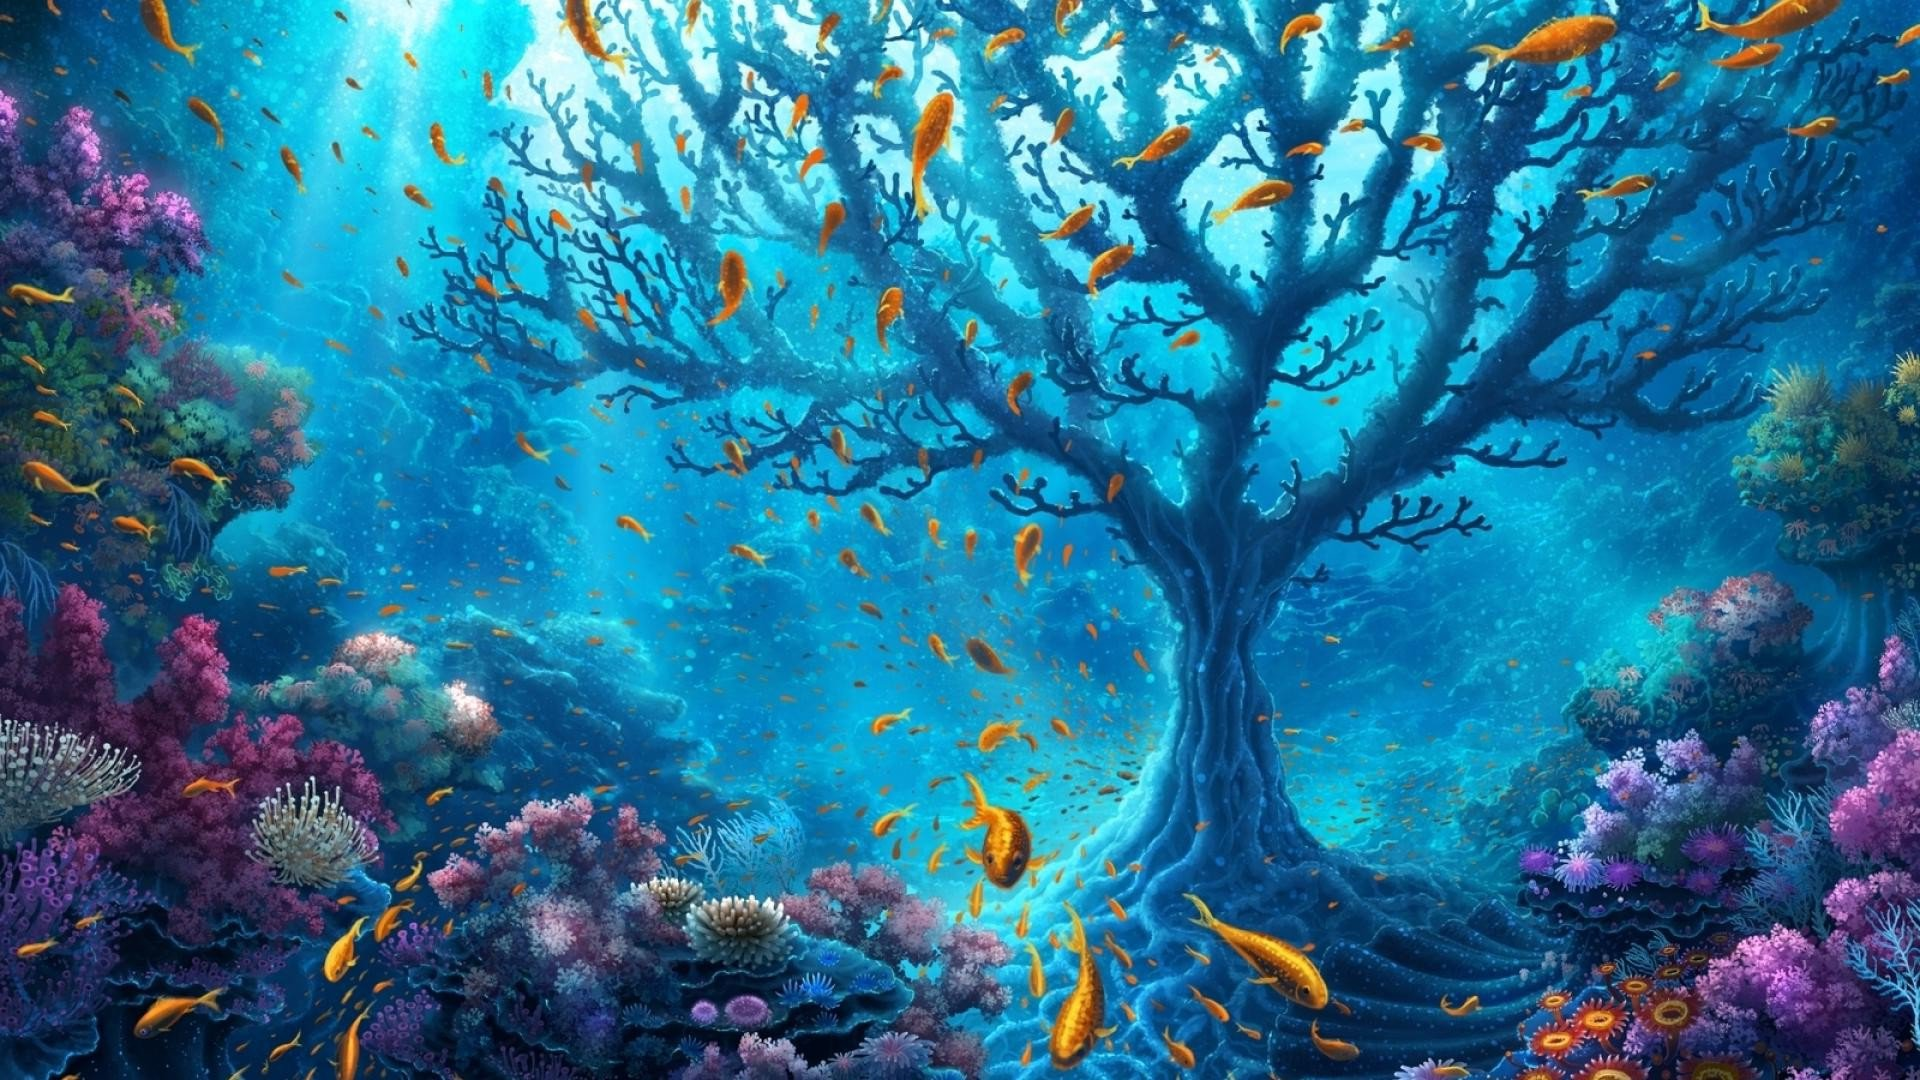 Underwater world hd nature 4k wallpapers images - Underwater desktop background ...